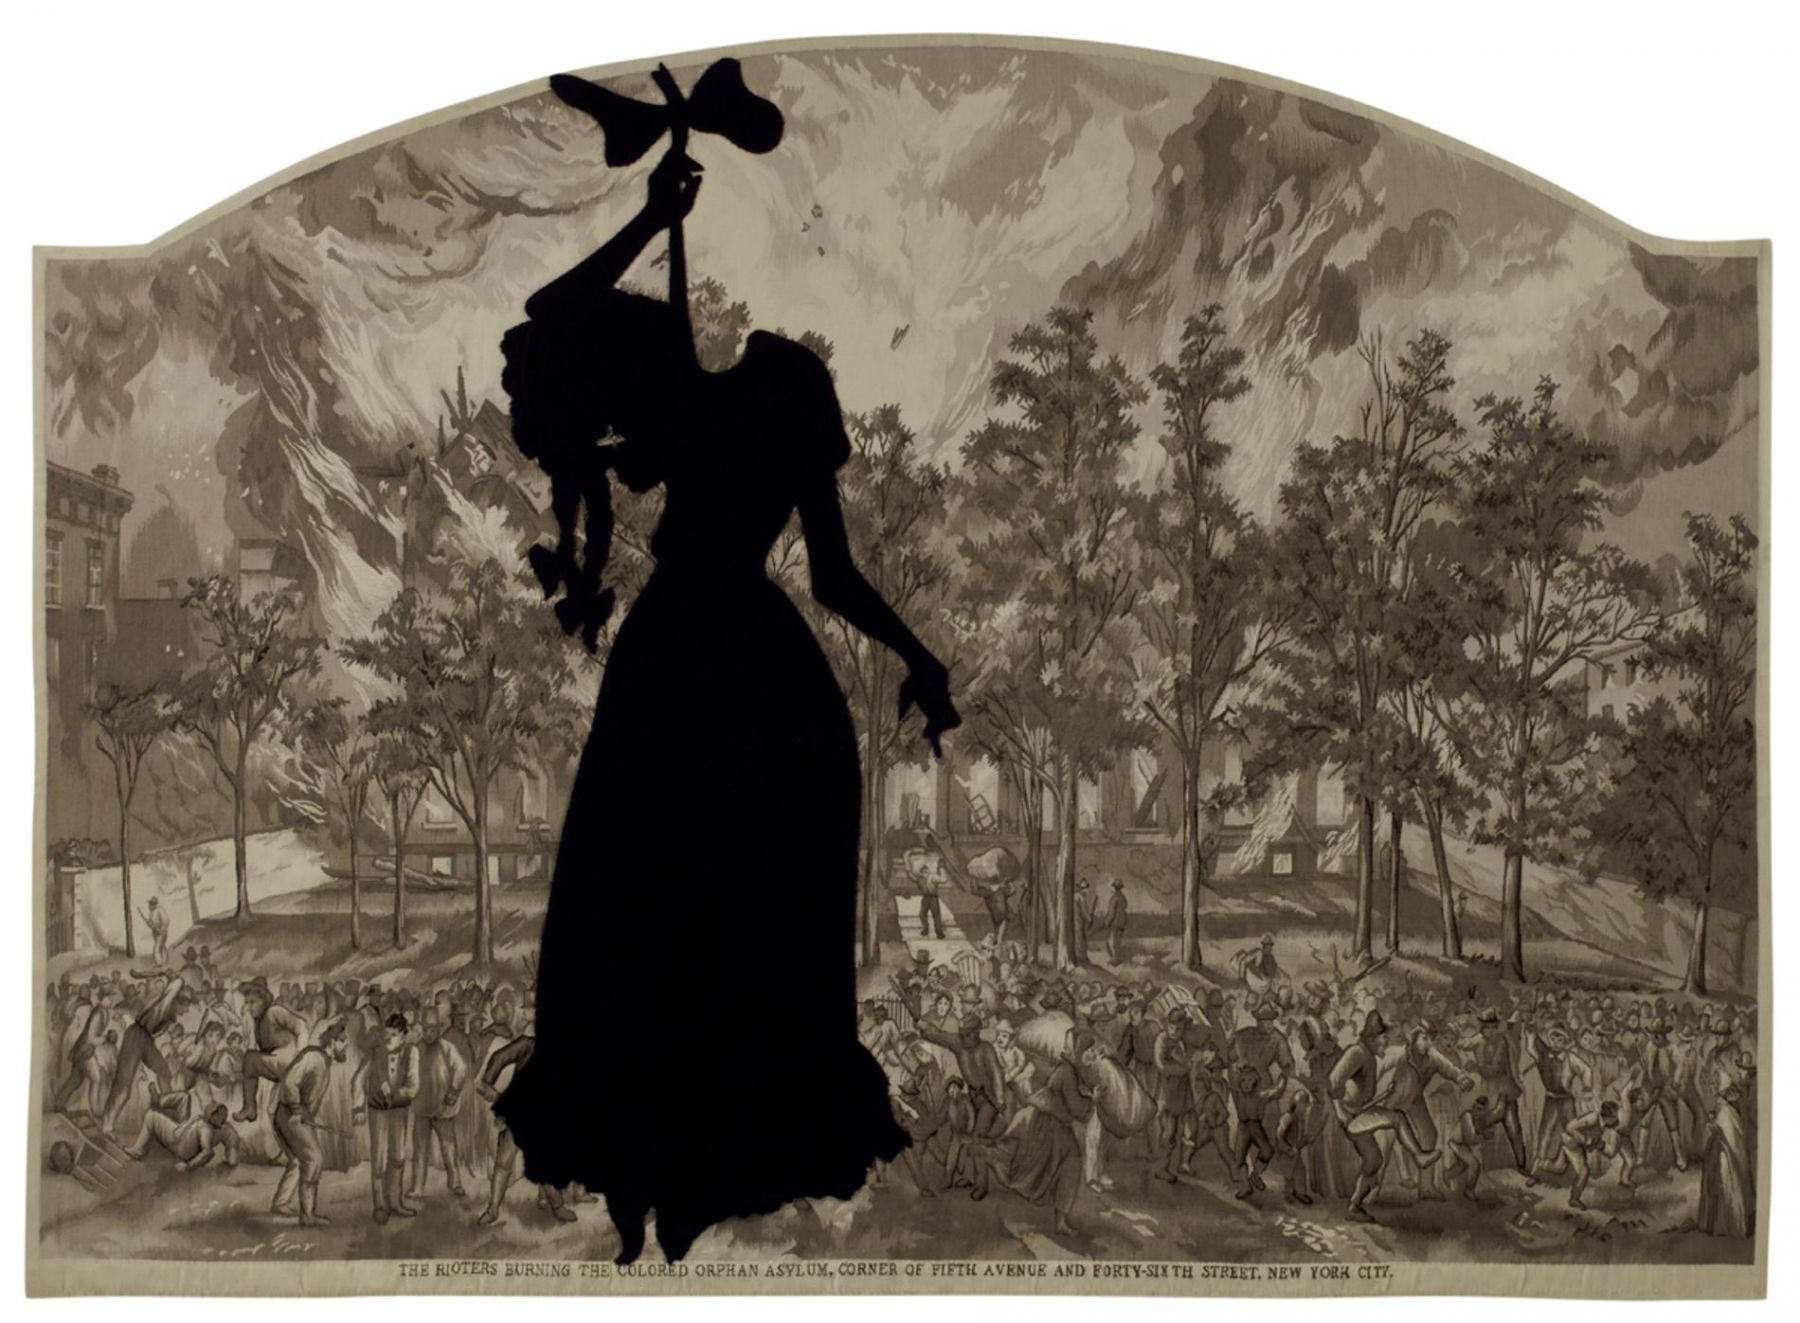 , KARA WALKER A Warm Summer Evening in 1863, 2008 Wool tapestry and hand-cut felt silhouette figure 69 x 98 in. (175.3 x 248.9 cm)Edition of 5